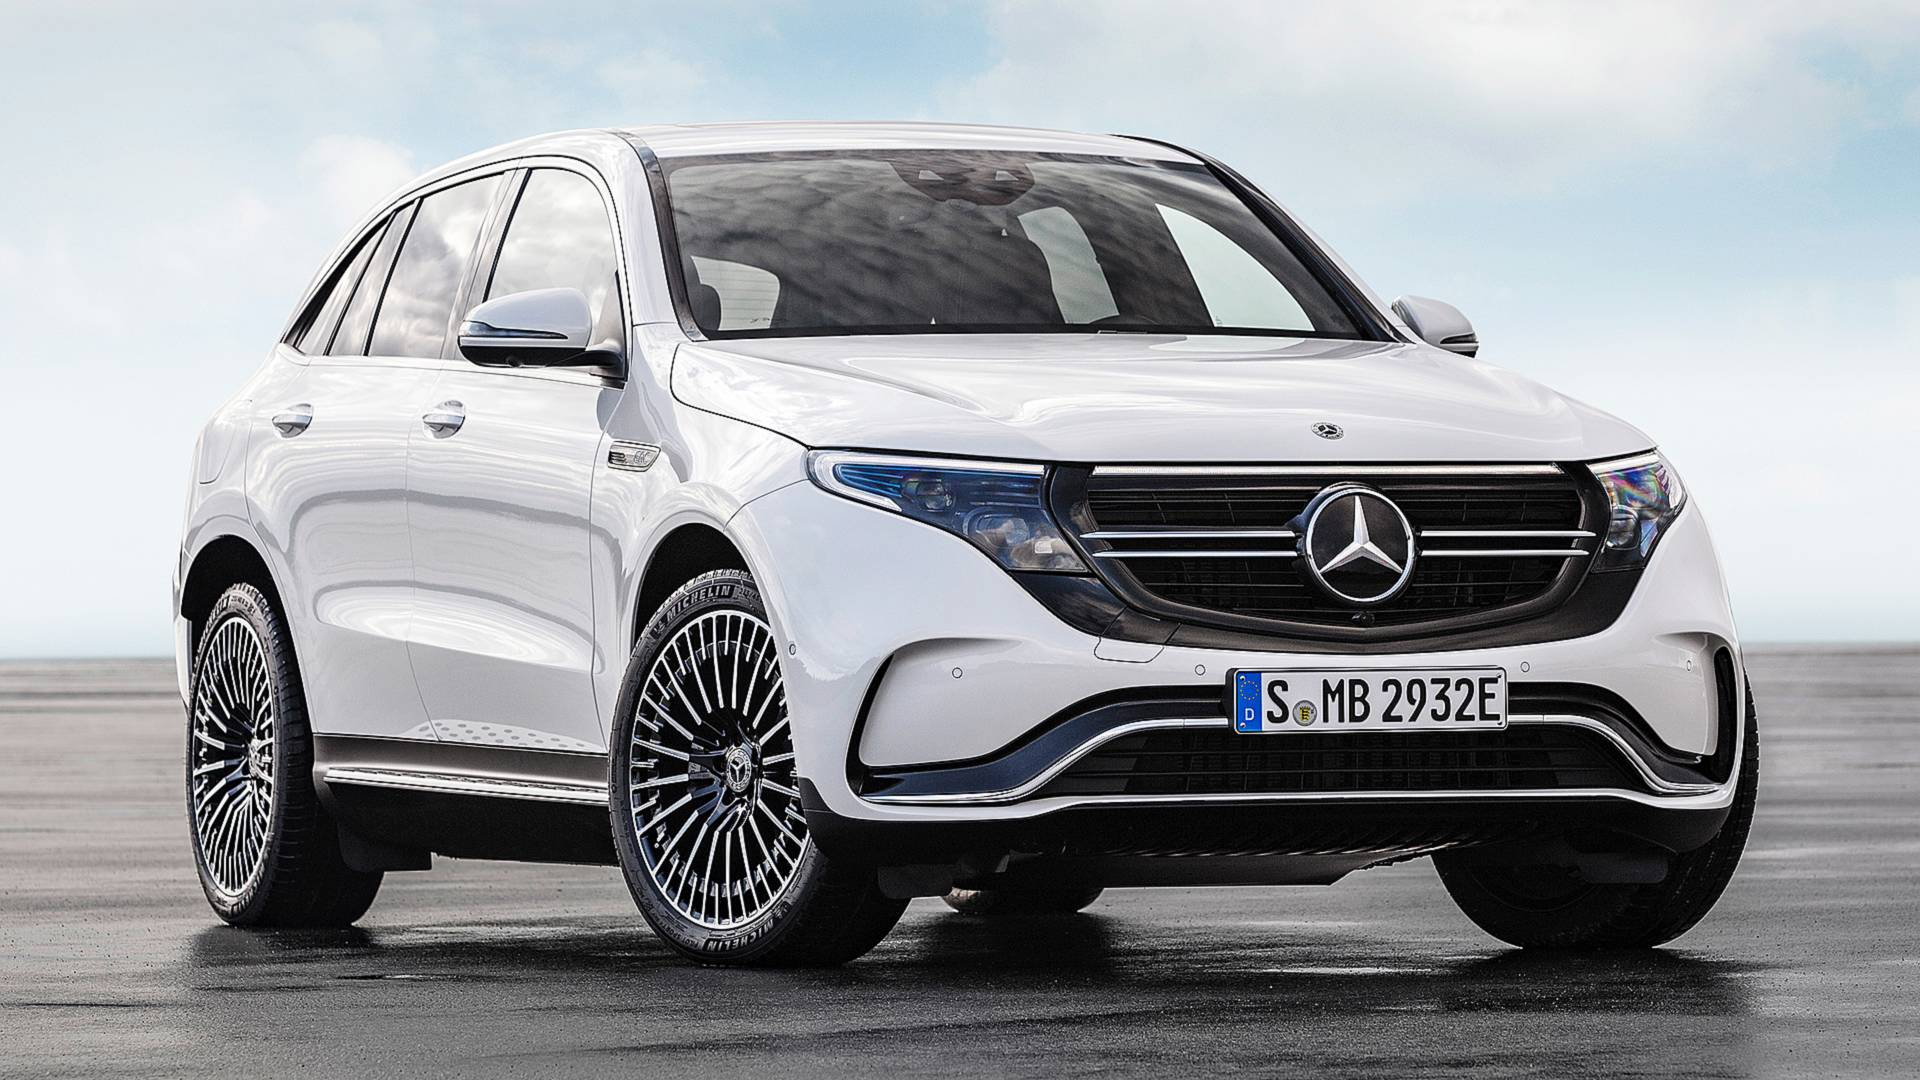 Mercedes-Benz EQC Can't Compete With Tesla: Only 700 Sold Since Launch